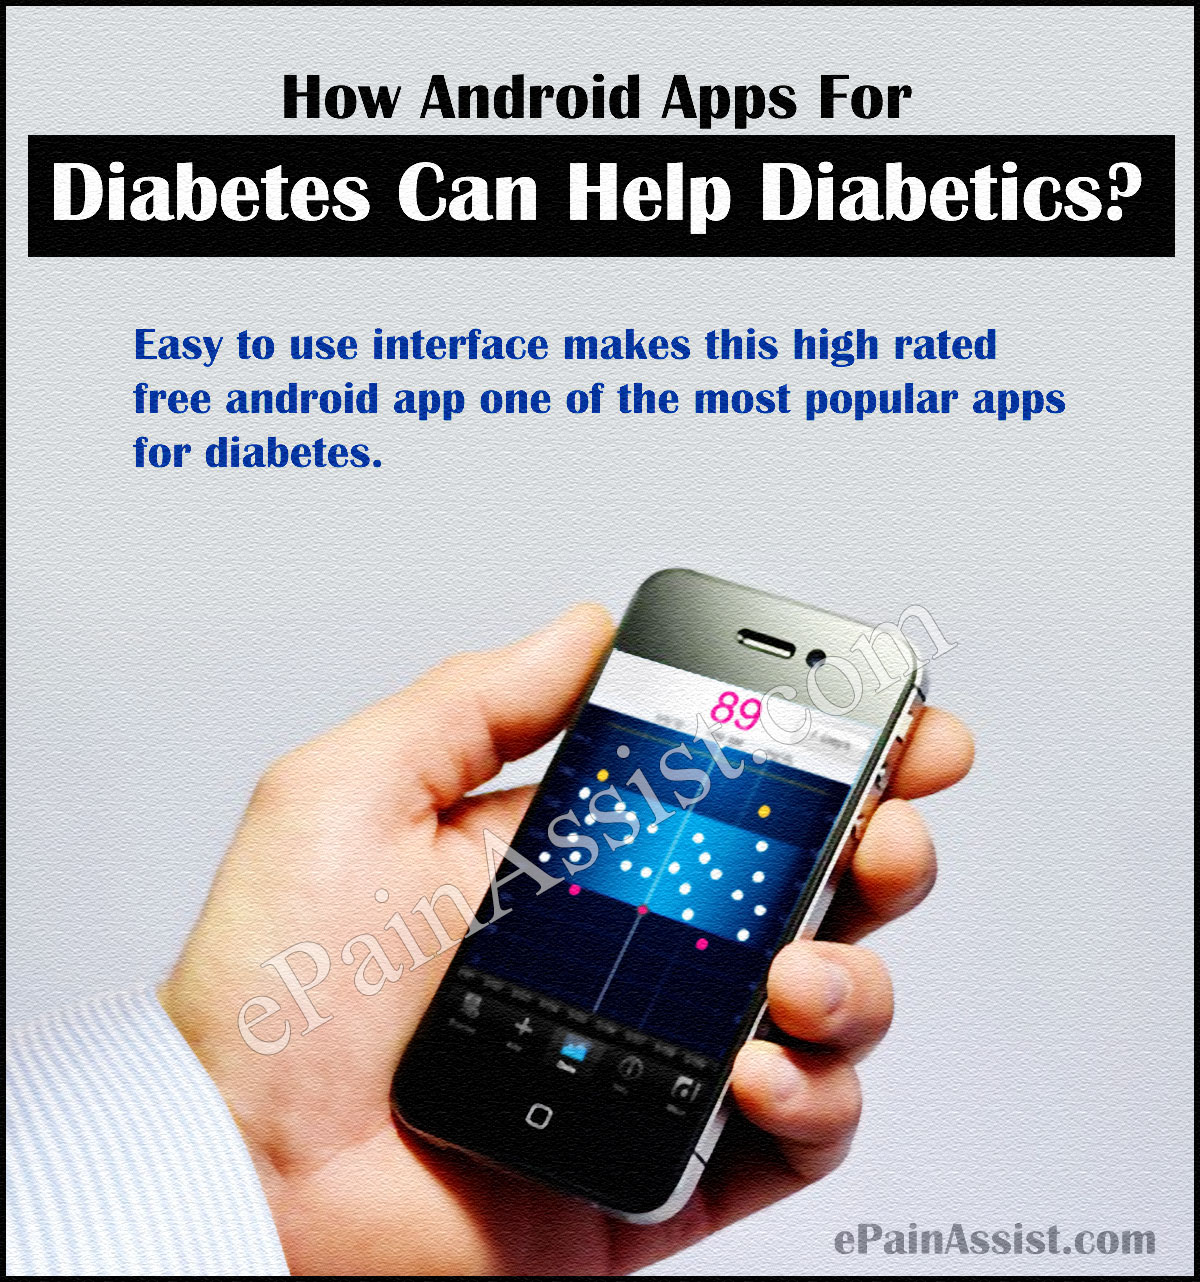 How Android Apps For Diabetes Can Help Diabetics?